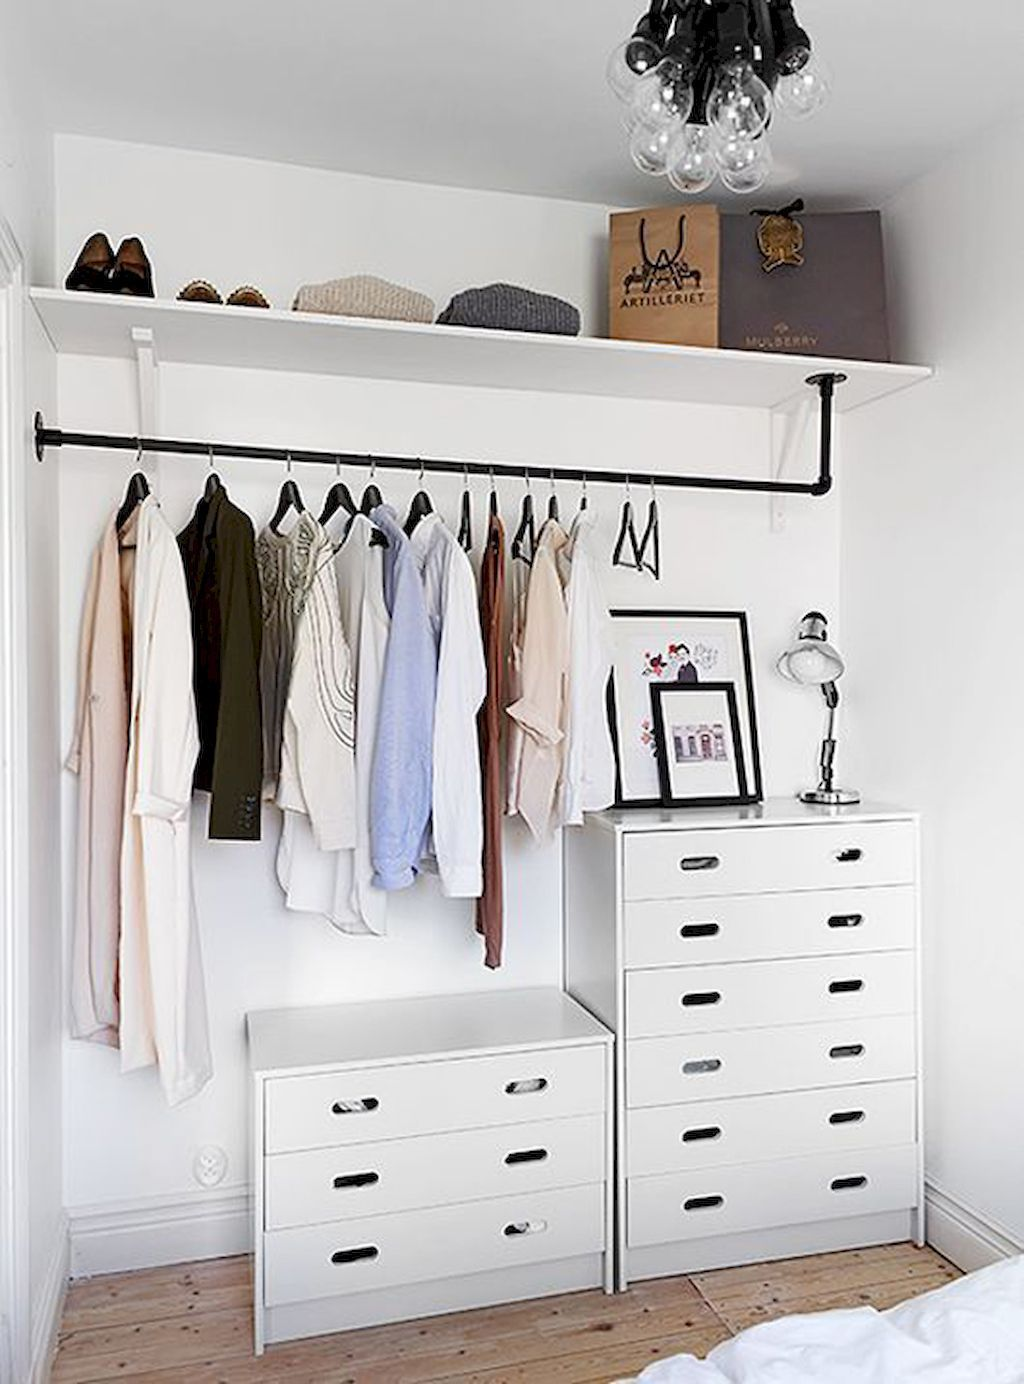 67 effective and clever bedroom storage ideas